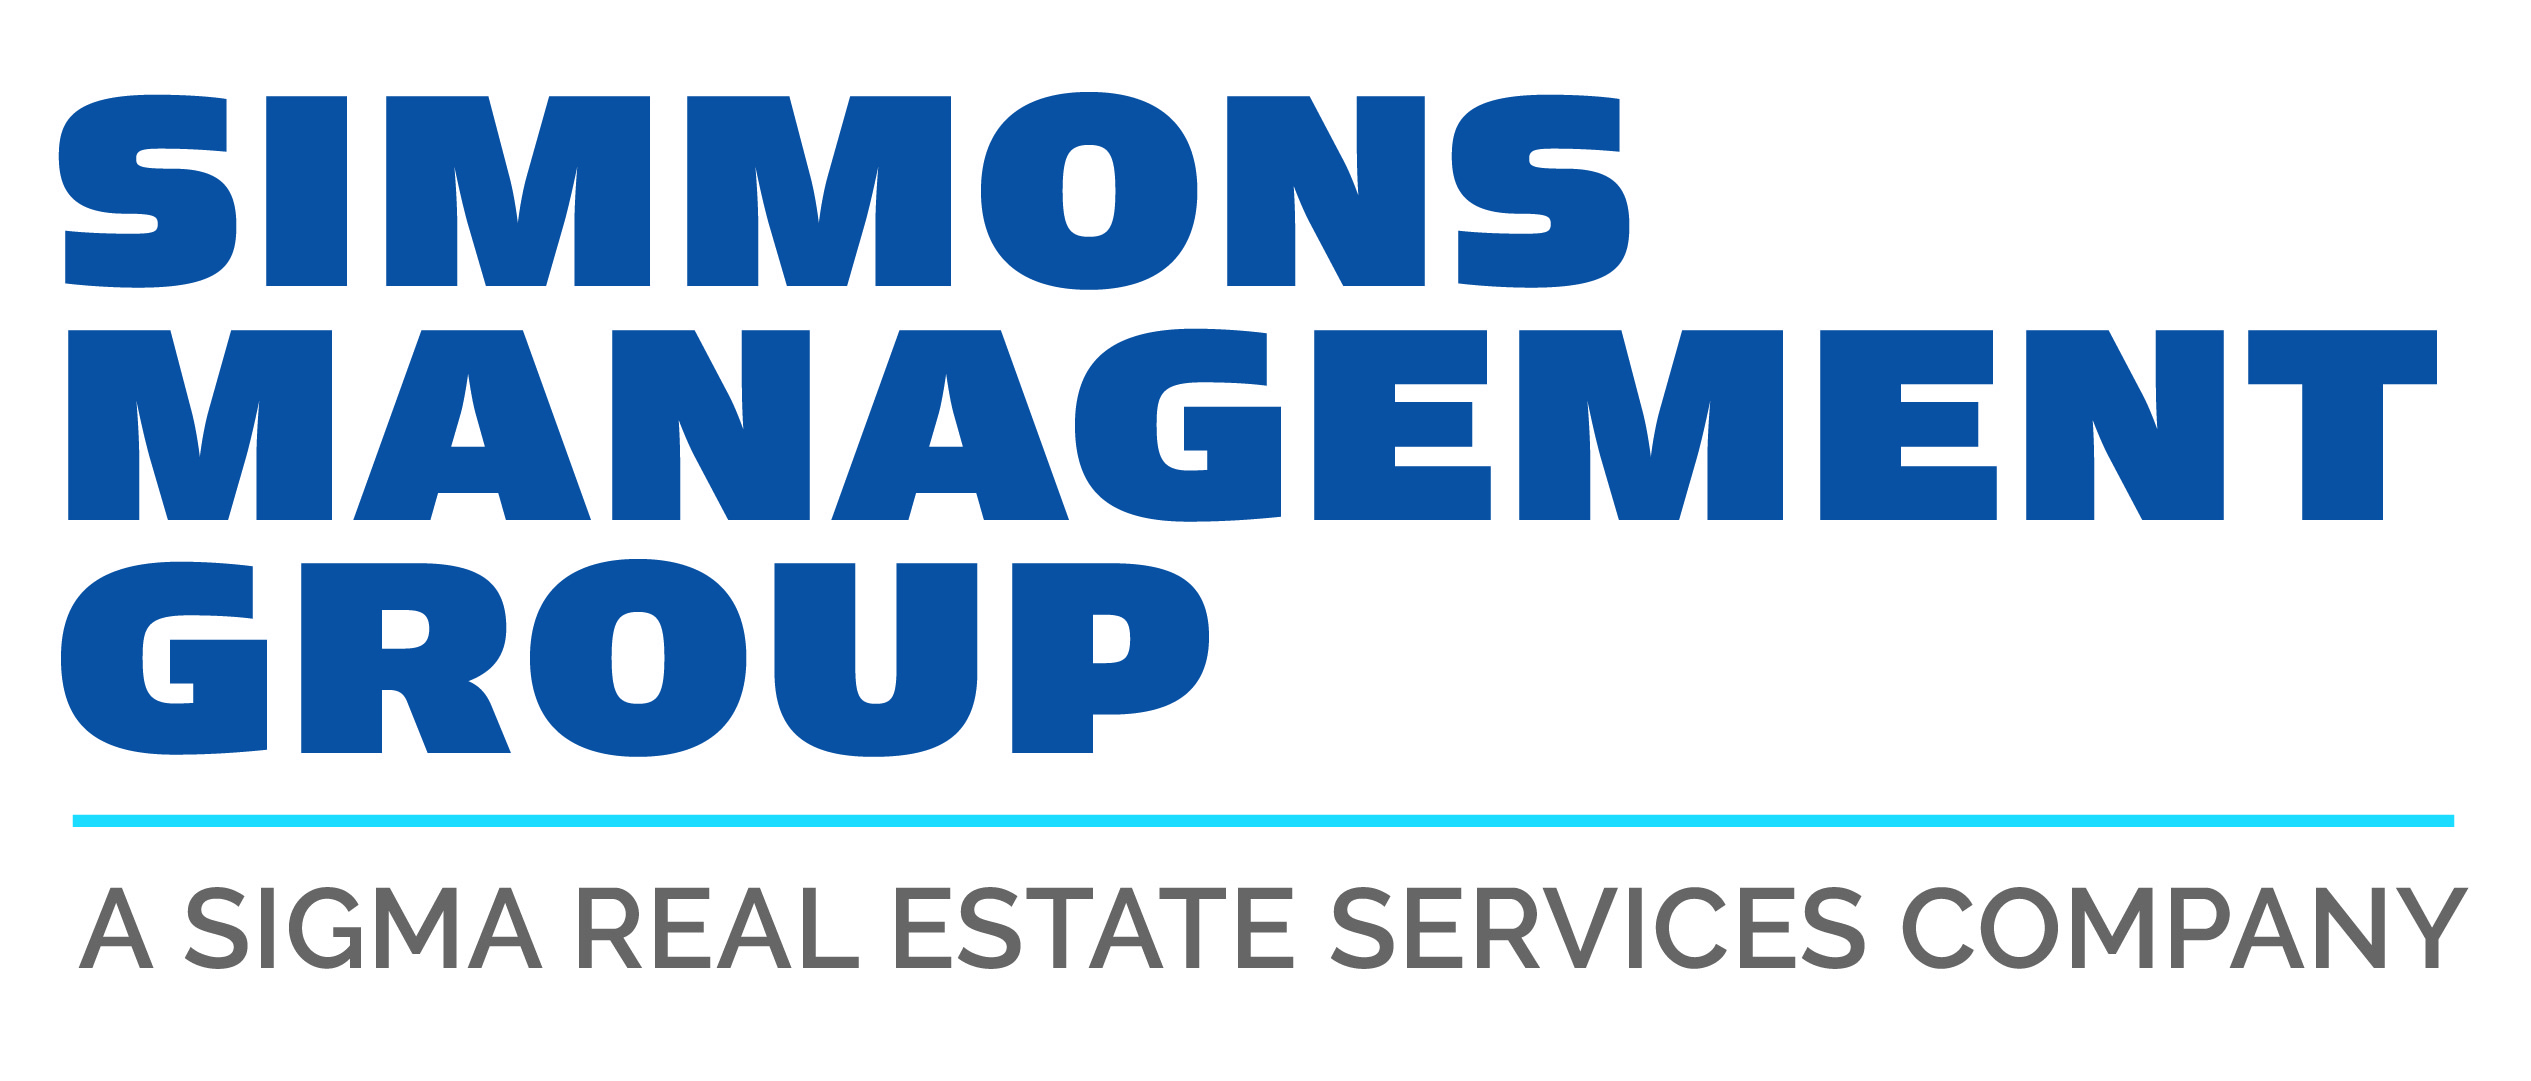 Simmons Management Group, Inc